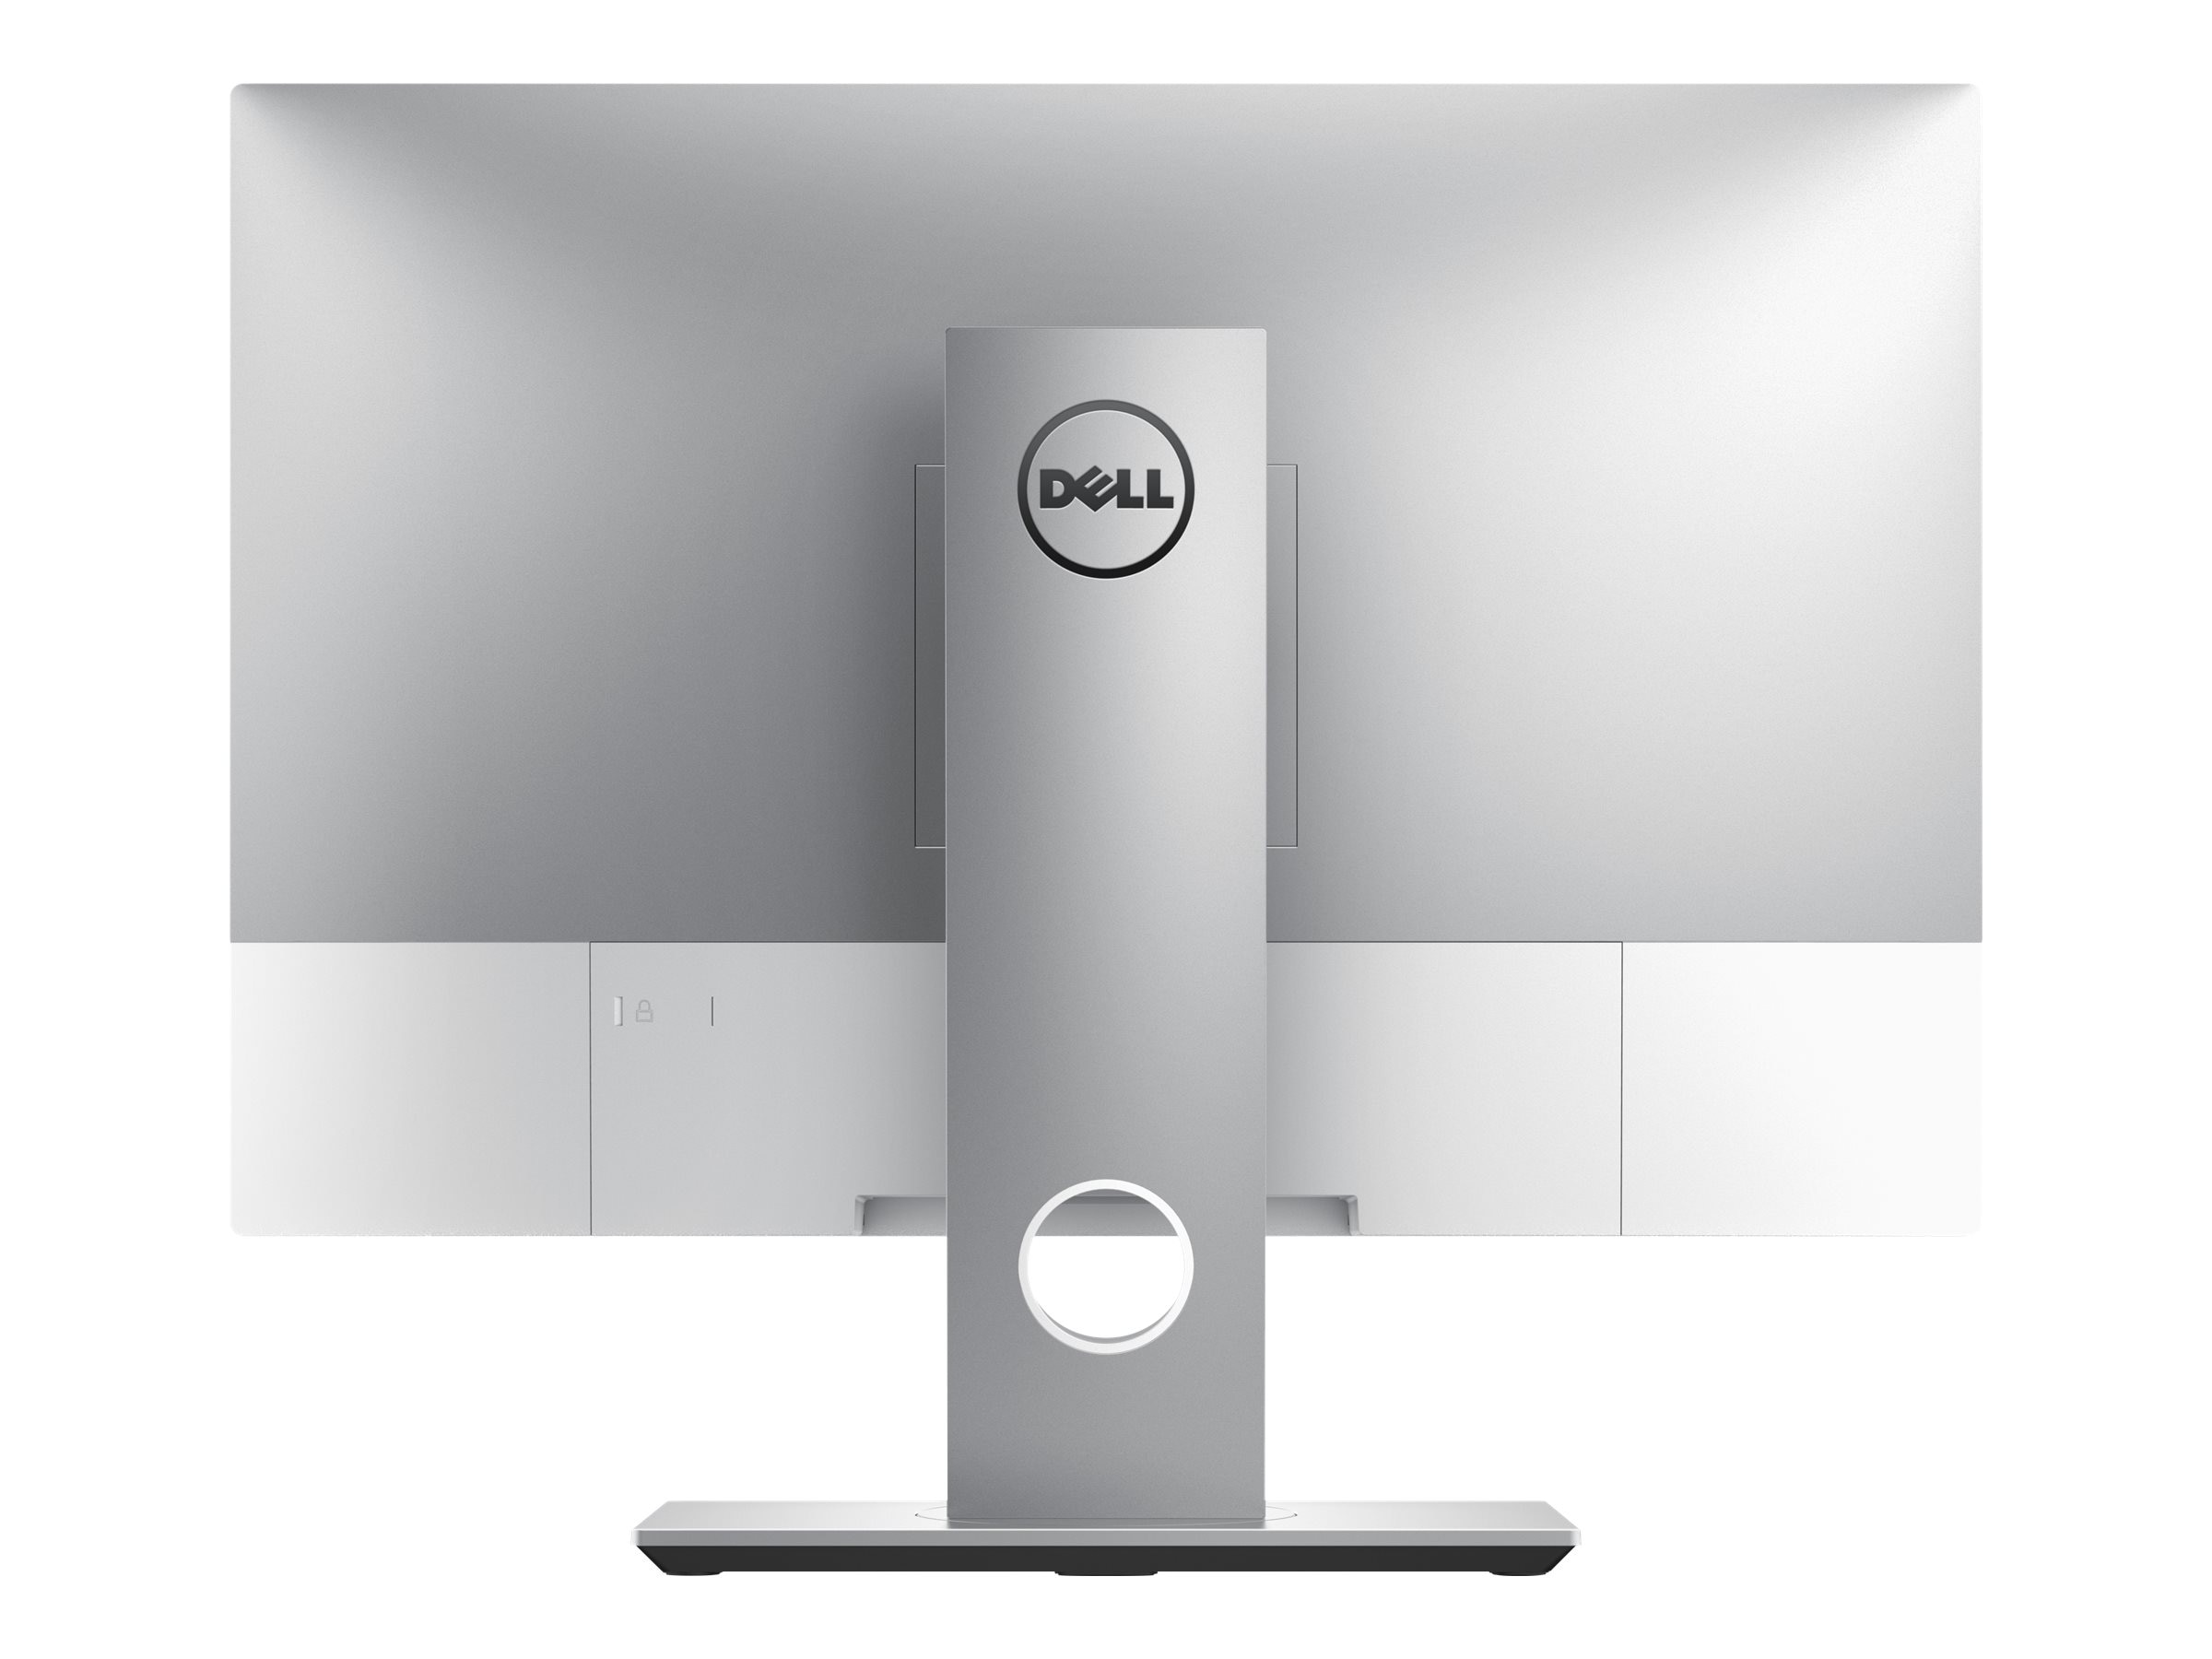 Dell MR2416 Image 5